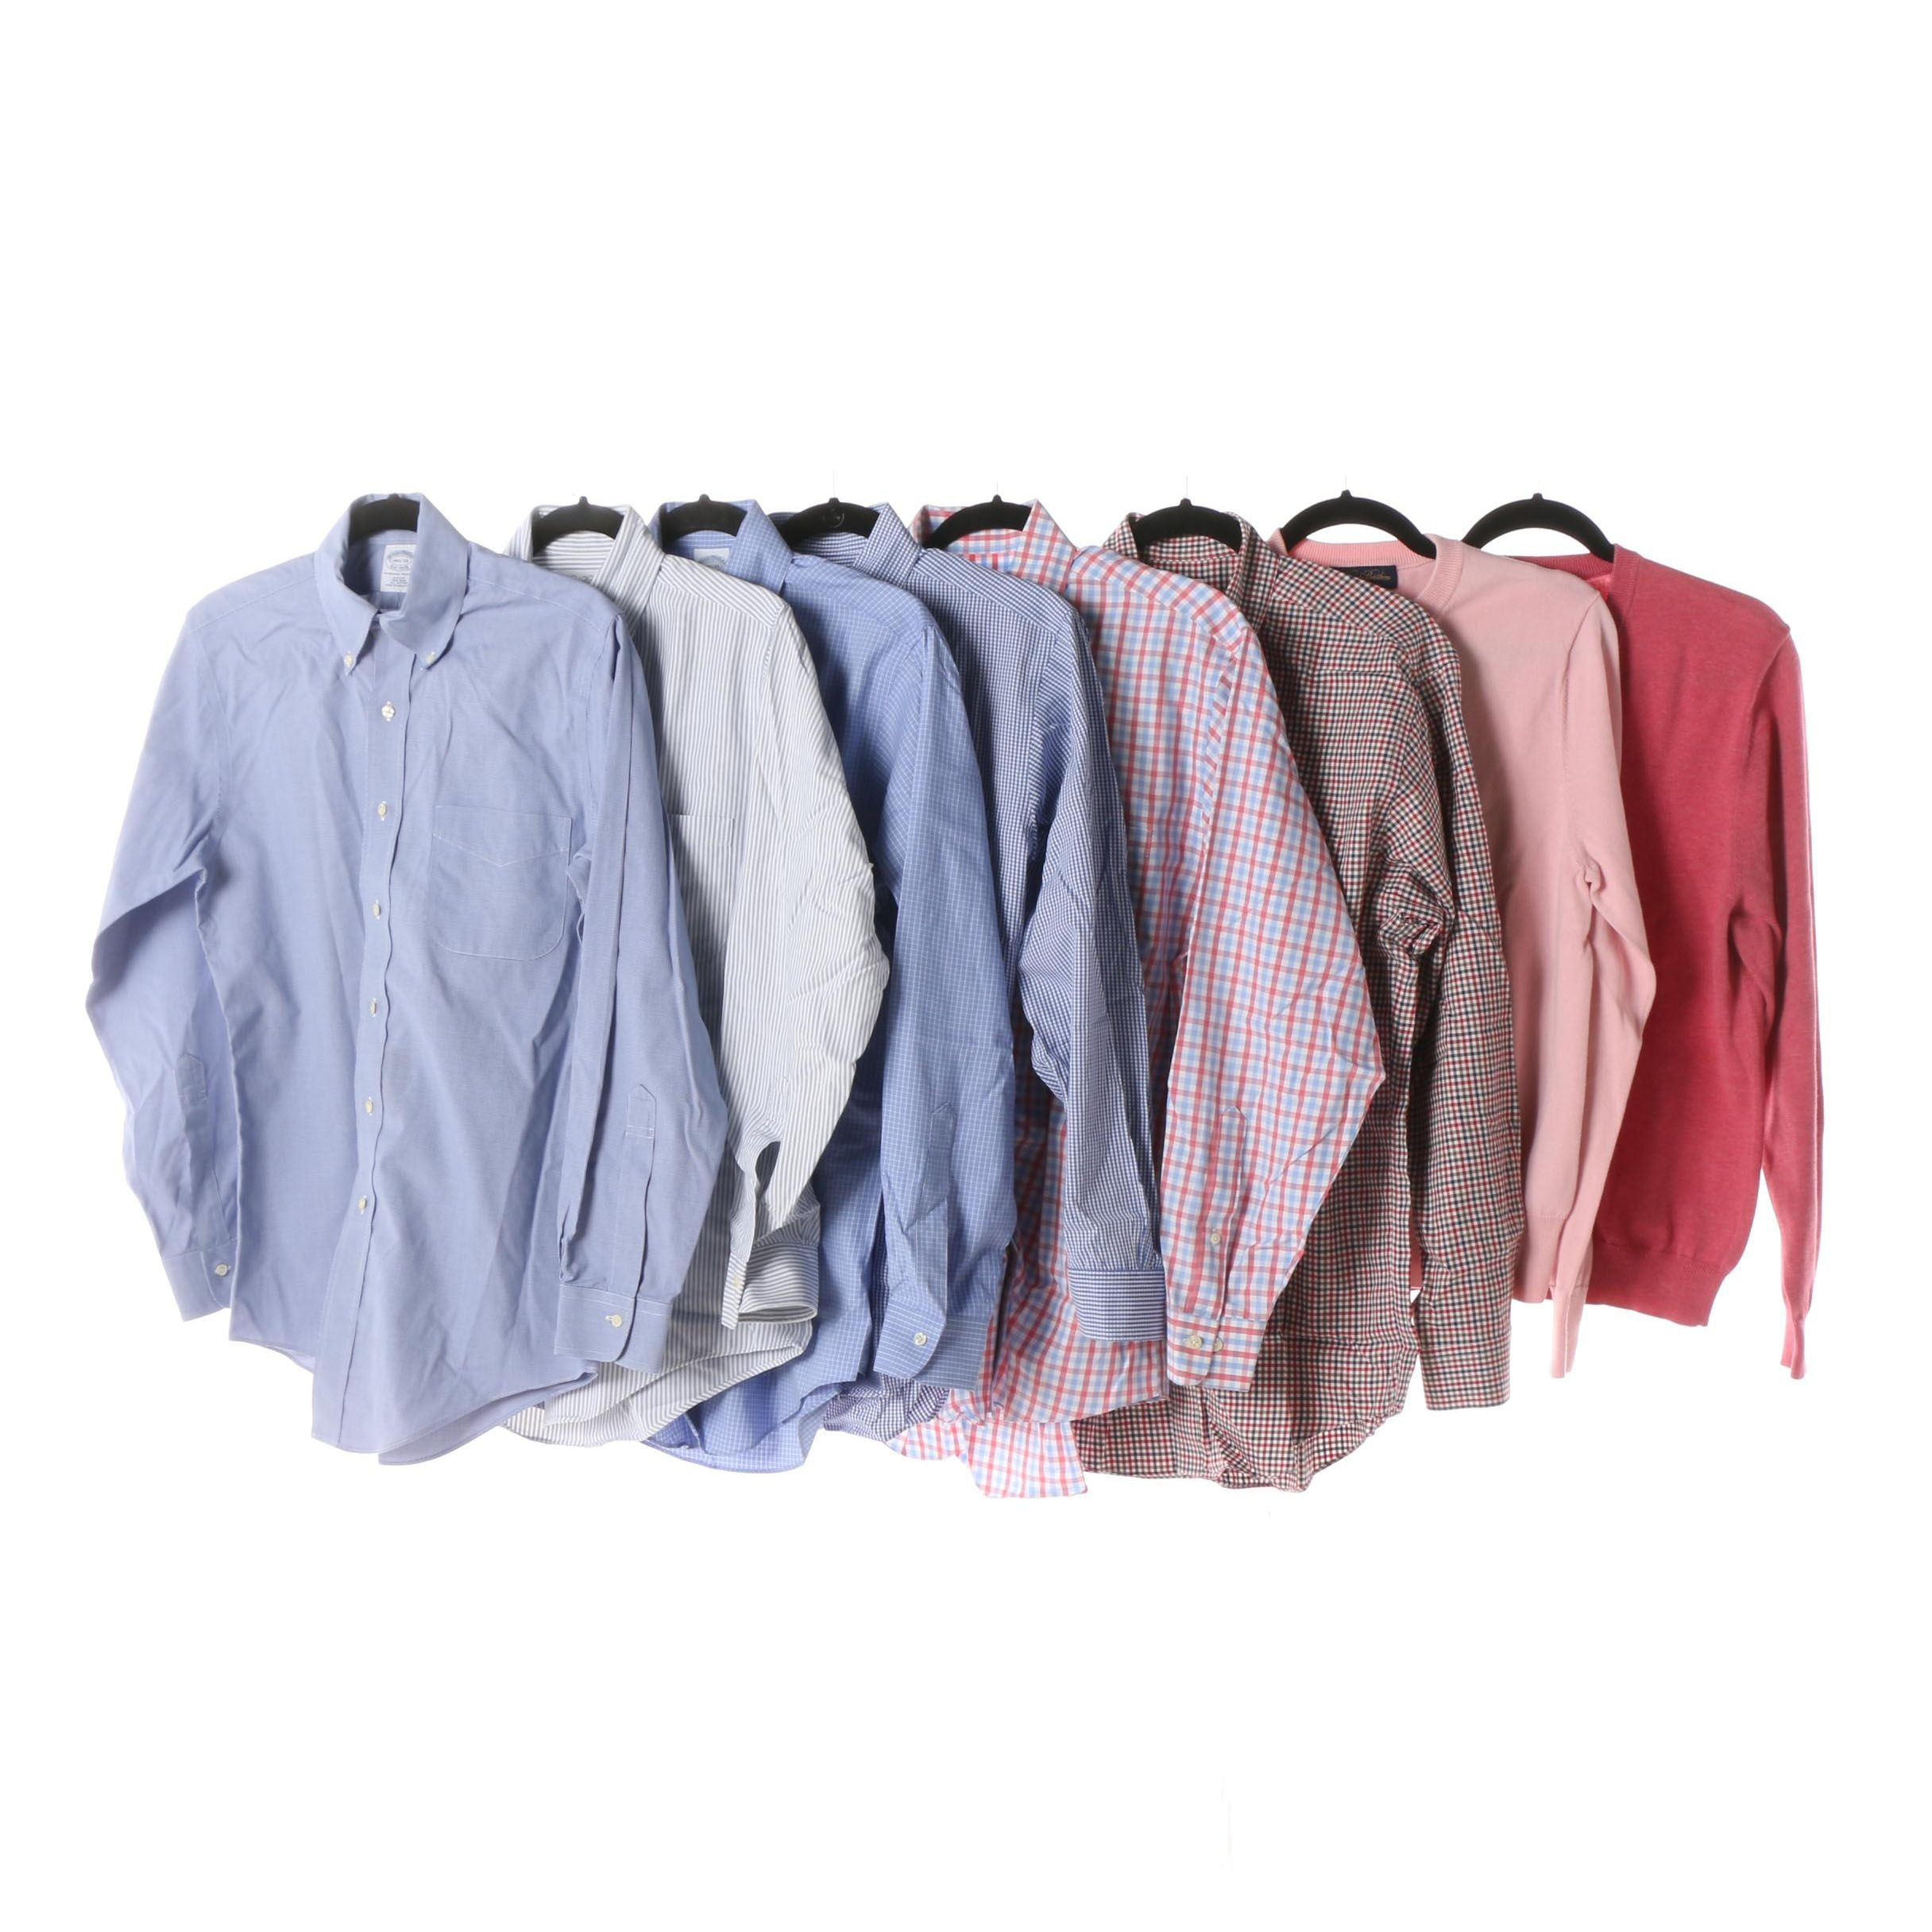 Men's Brooks Brothers Cotton Dress Shirts and Sweaters